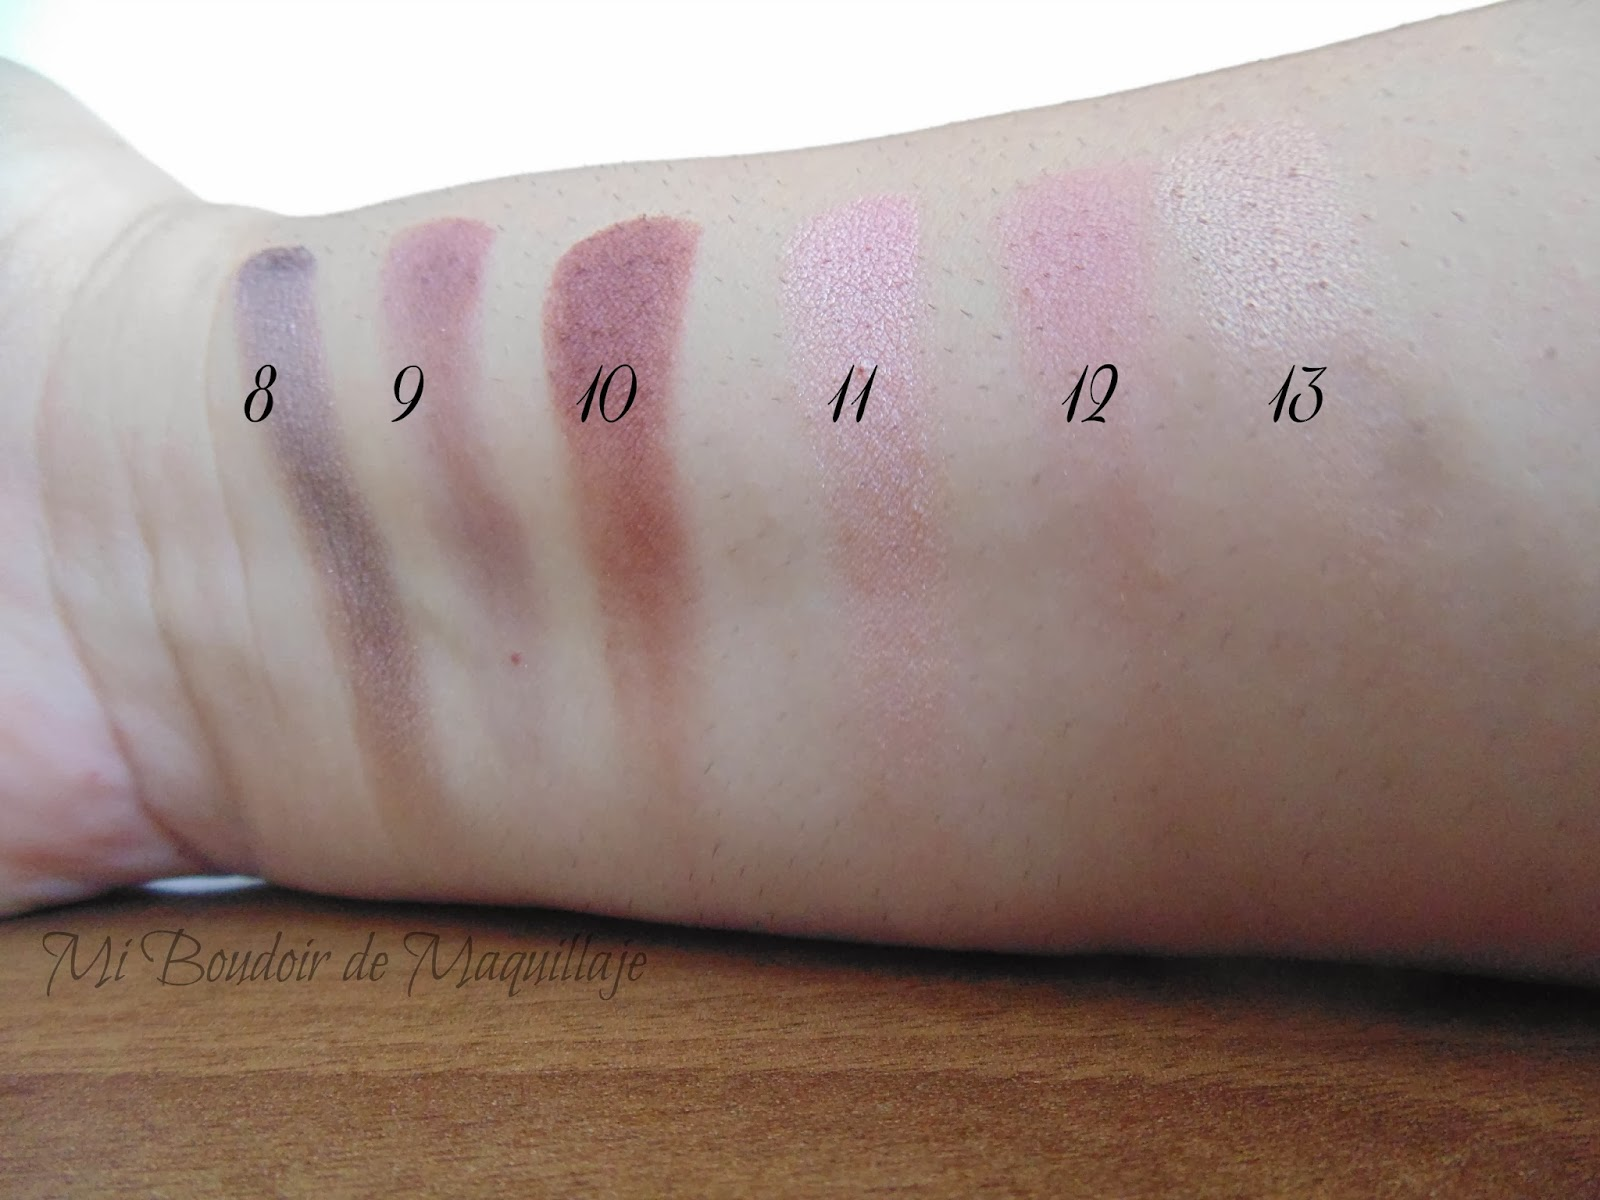 swatches sombras de wet and wild